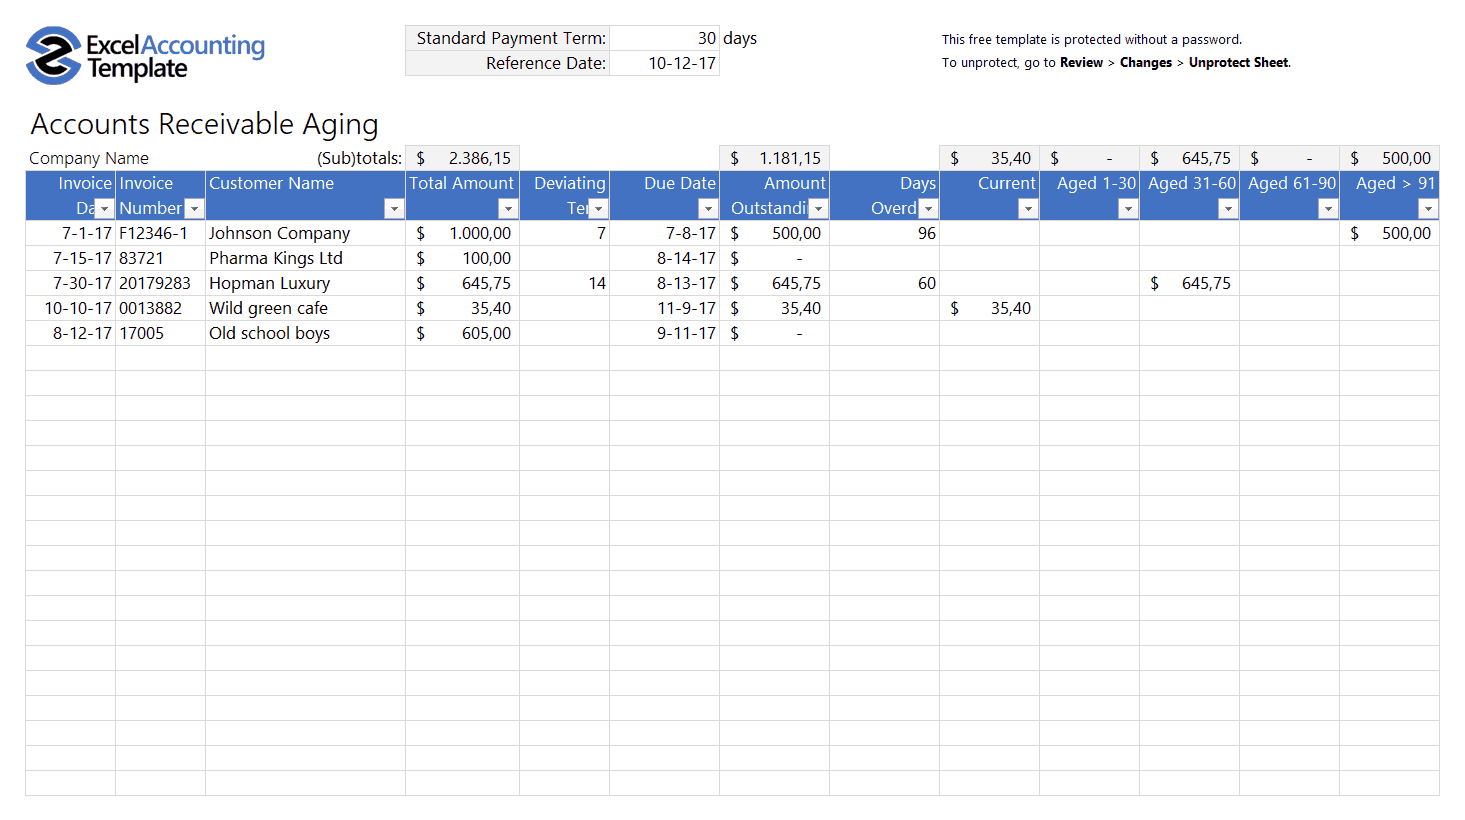 Free Accounting Templates In Excel   Download For Your Business Throughout Accounting Template For Small Business